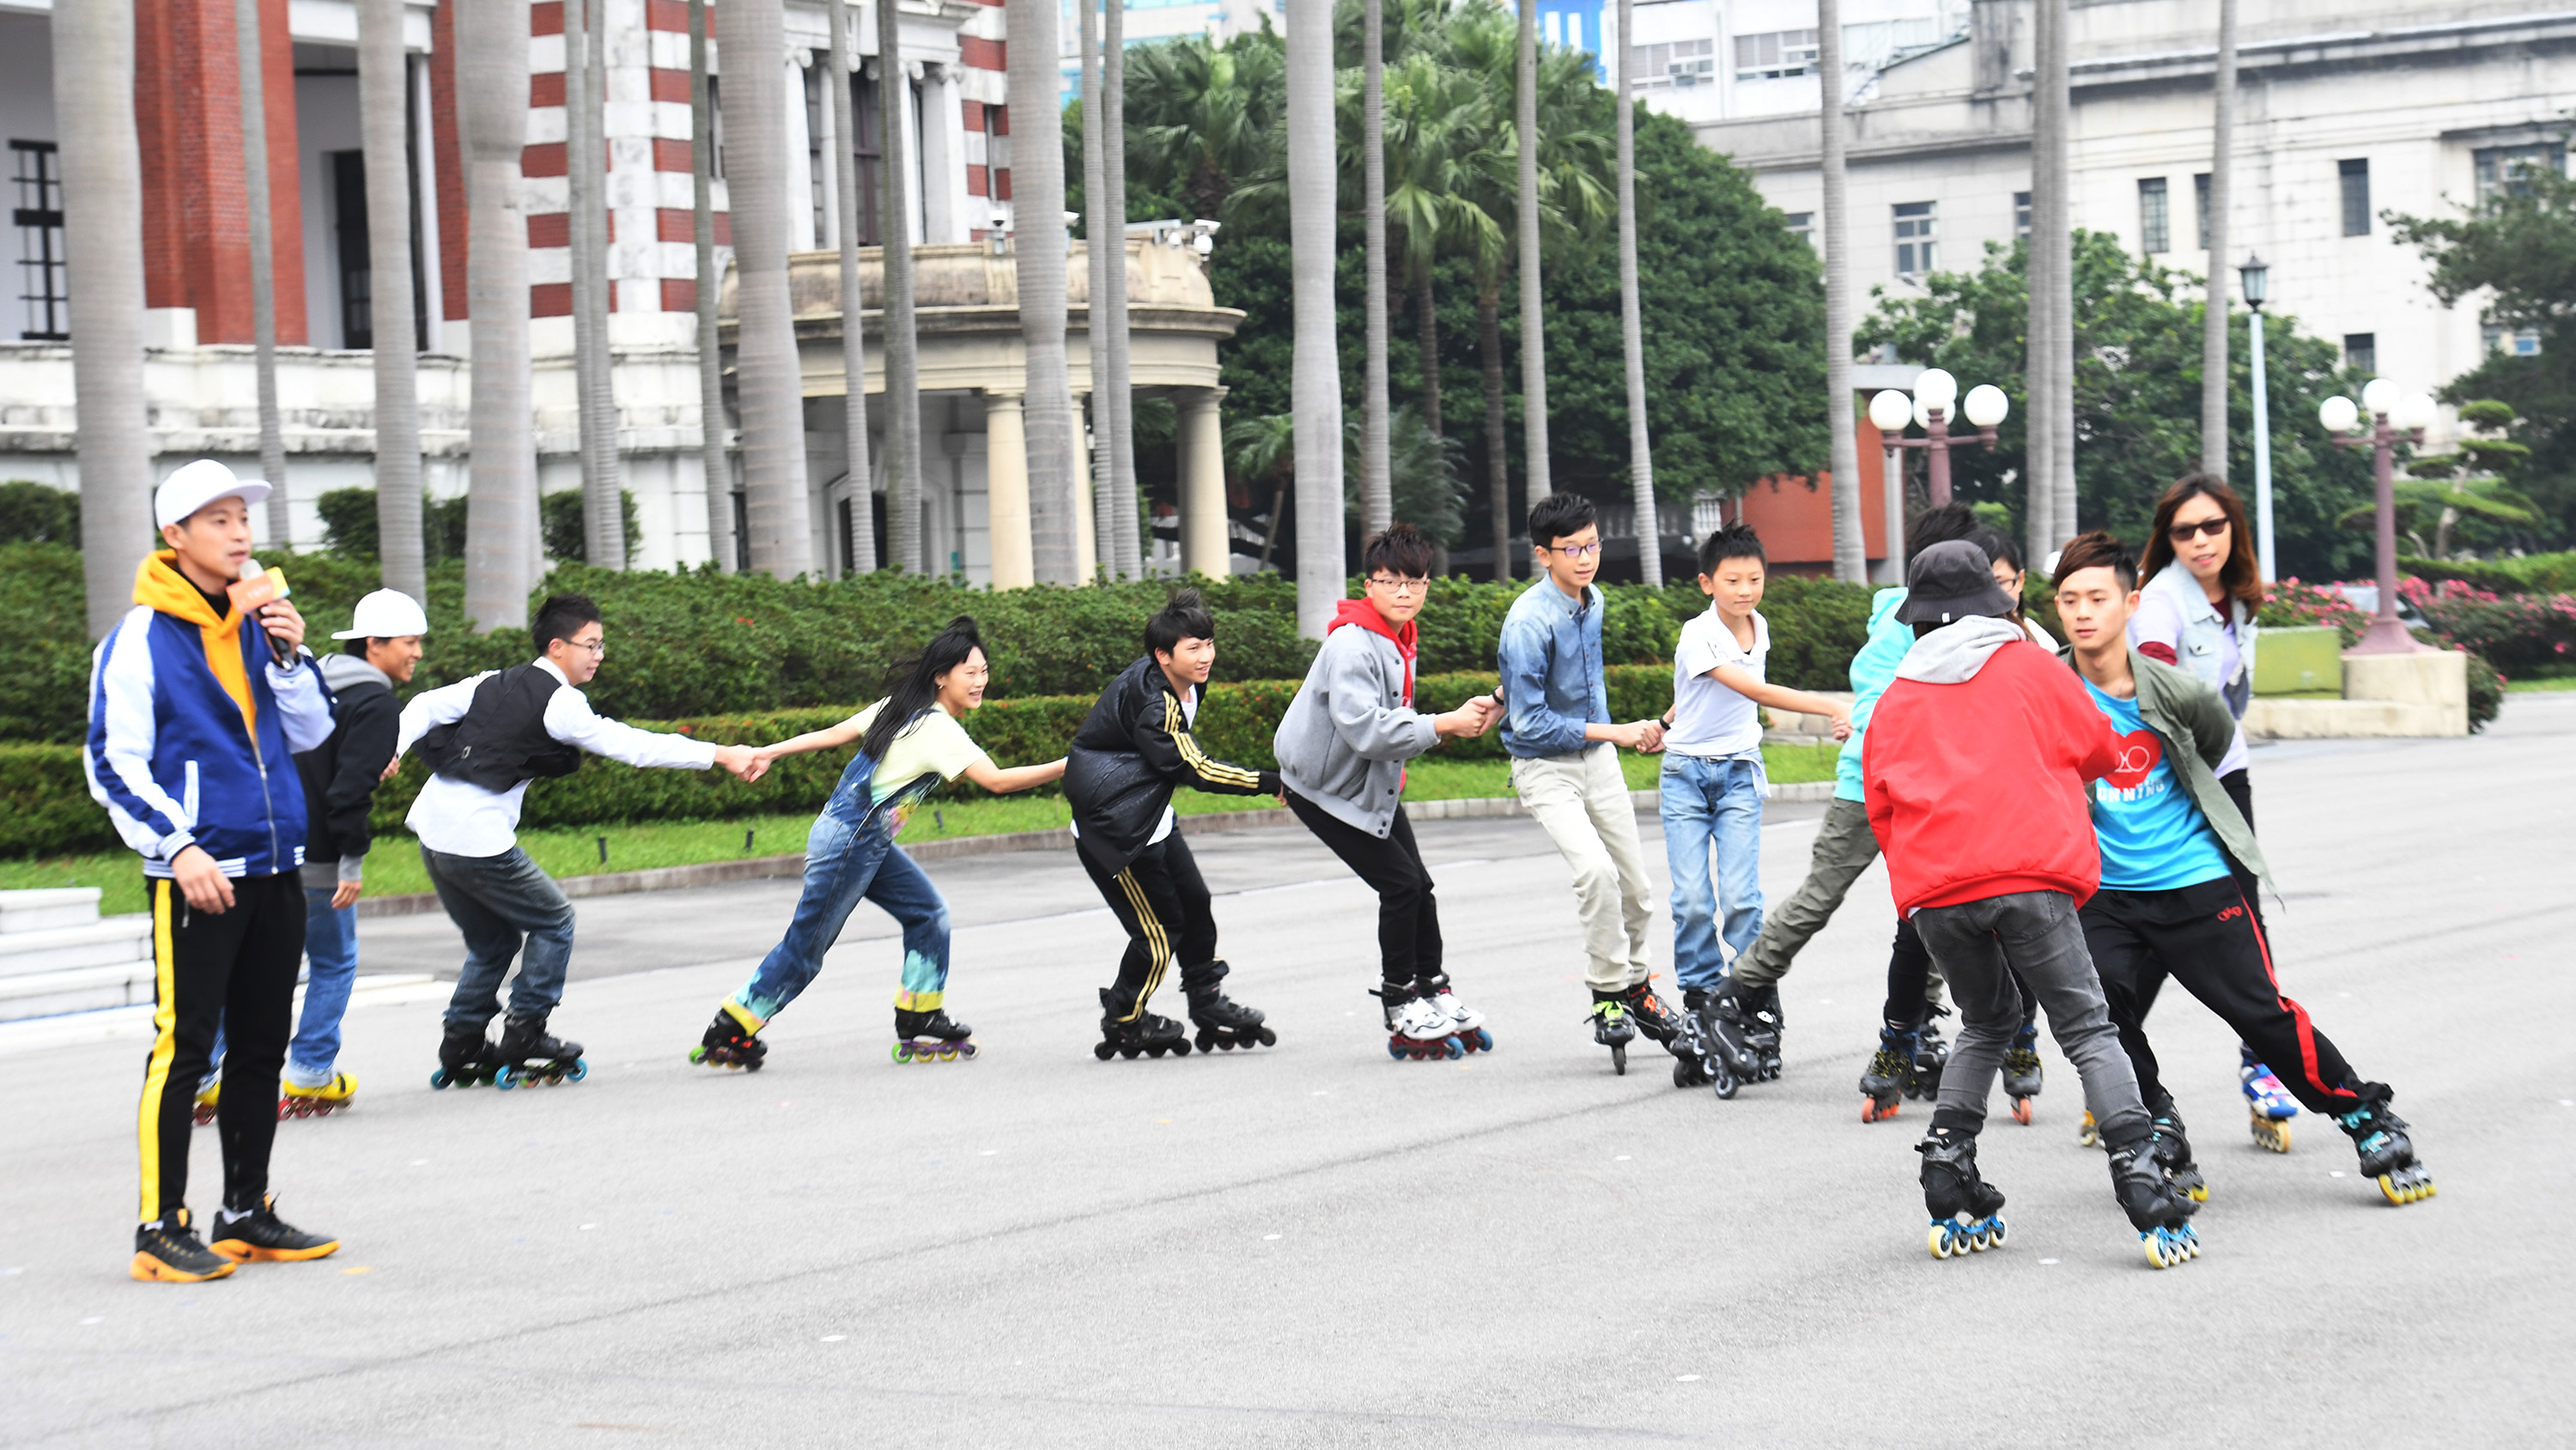 Roller skating show and charity market to follow New Year's flag-raising ceremony in Taipei